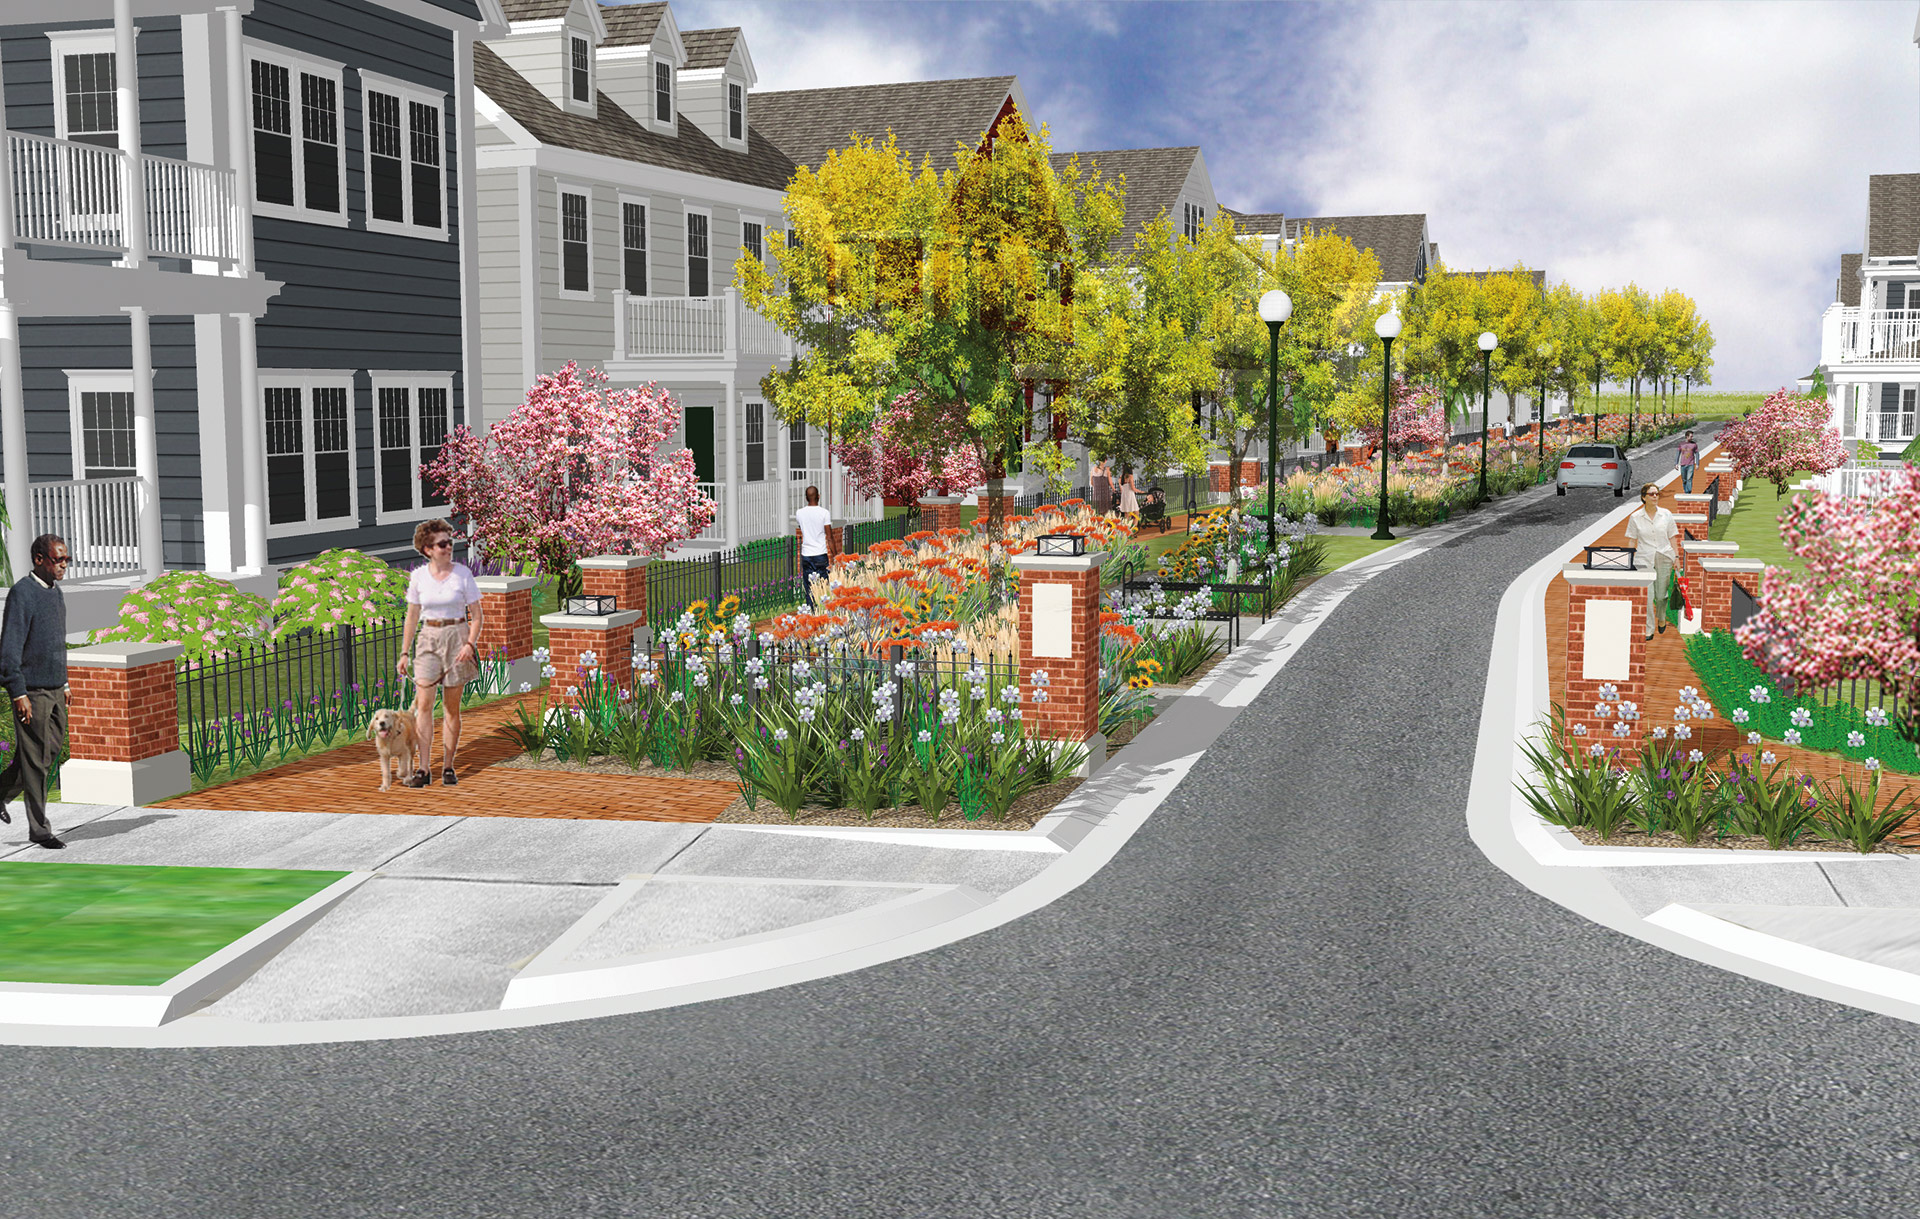 Artist's rendering of Boston Street